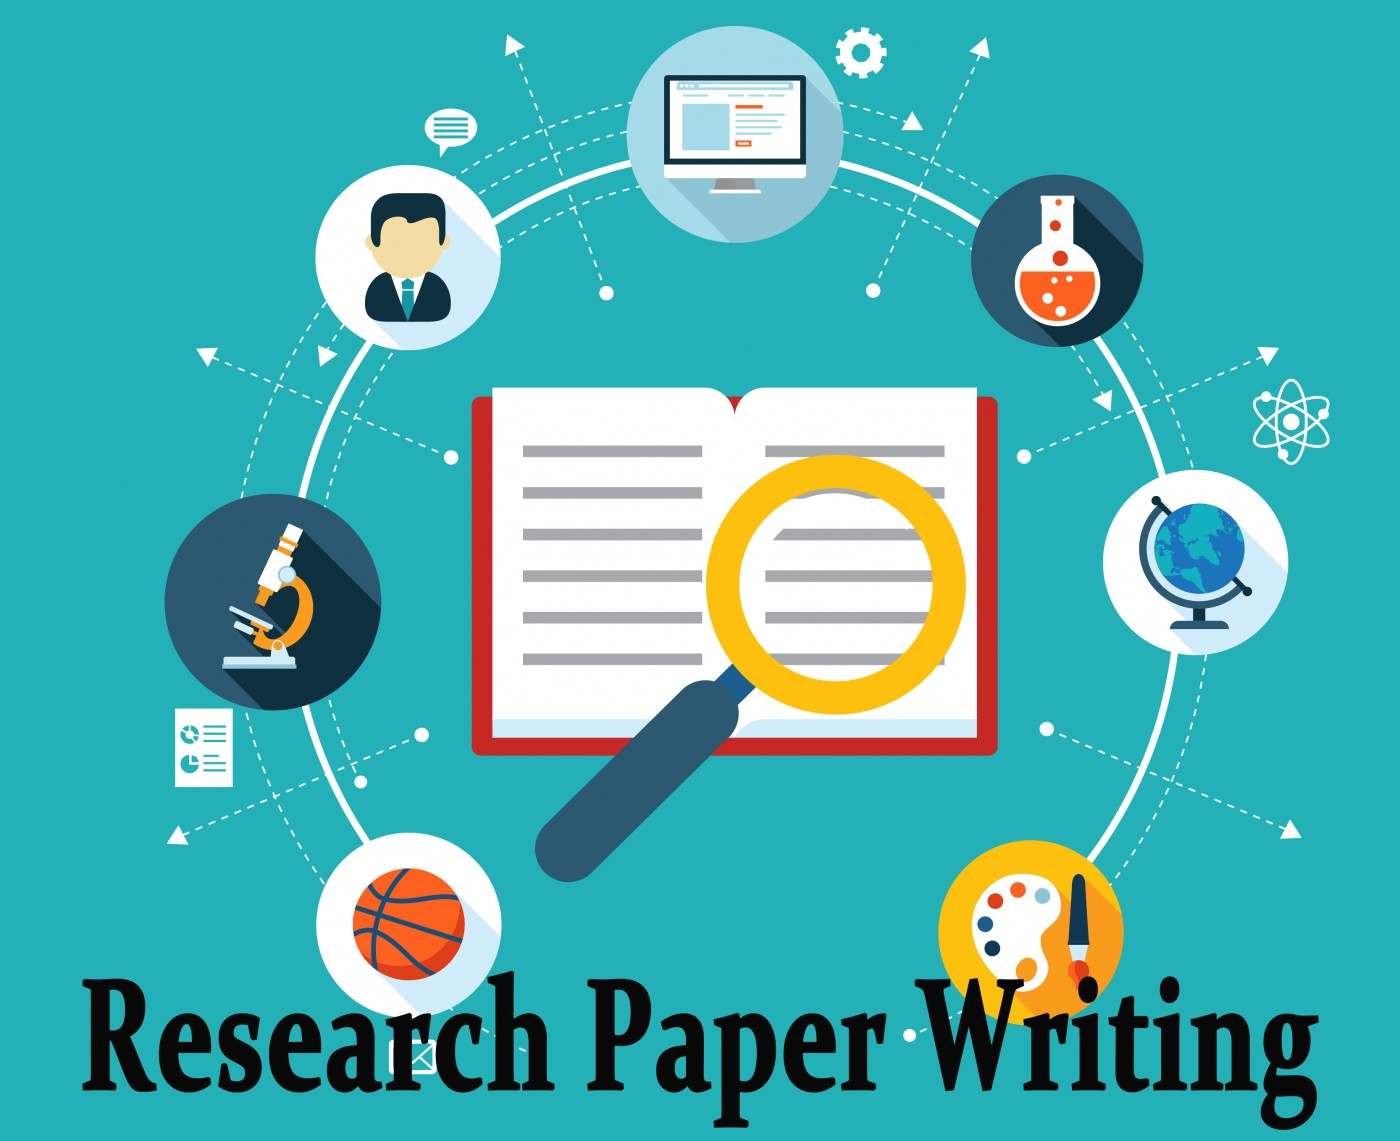 015 Research Paper 503 Effective Striking Writing Papers A Complete Guide 16th Edition Pdf 15th 1400